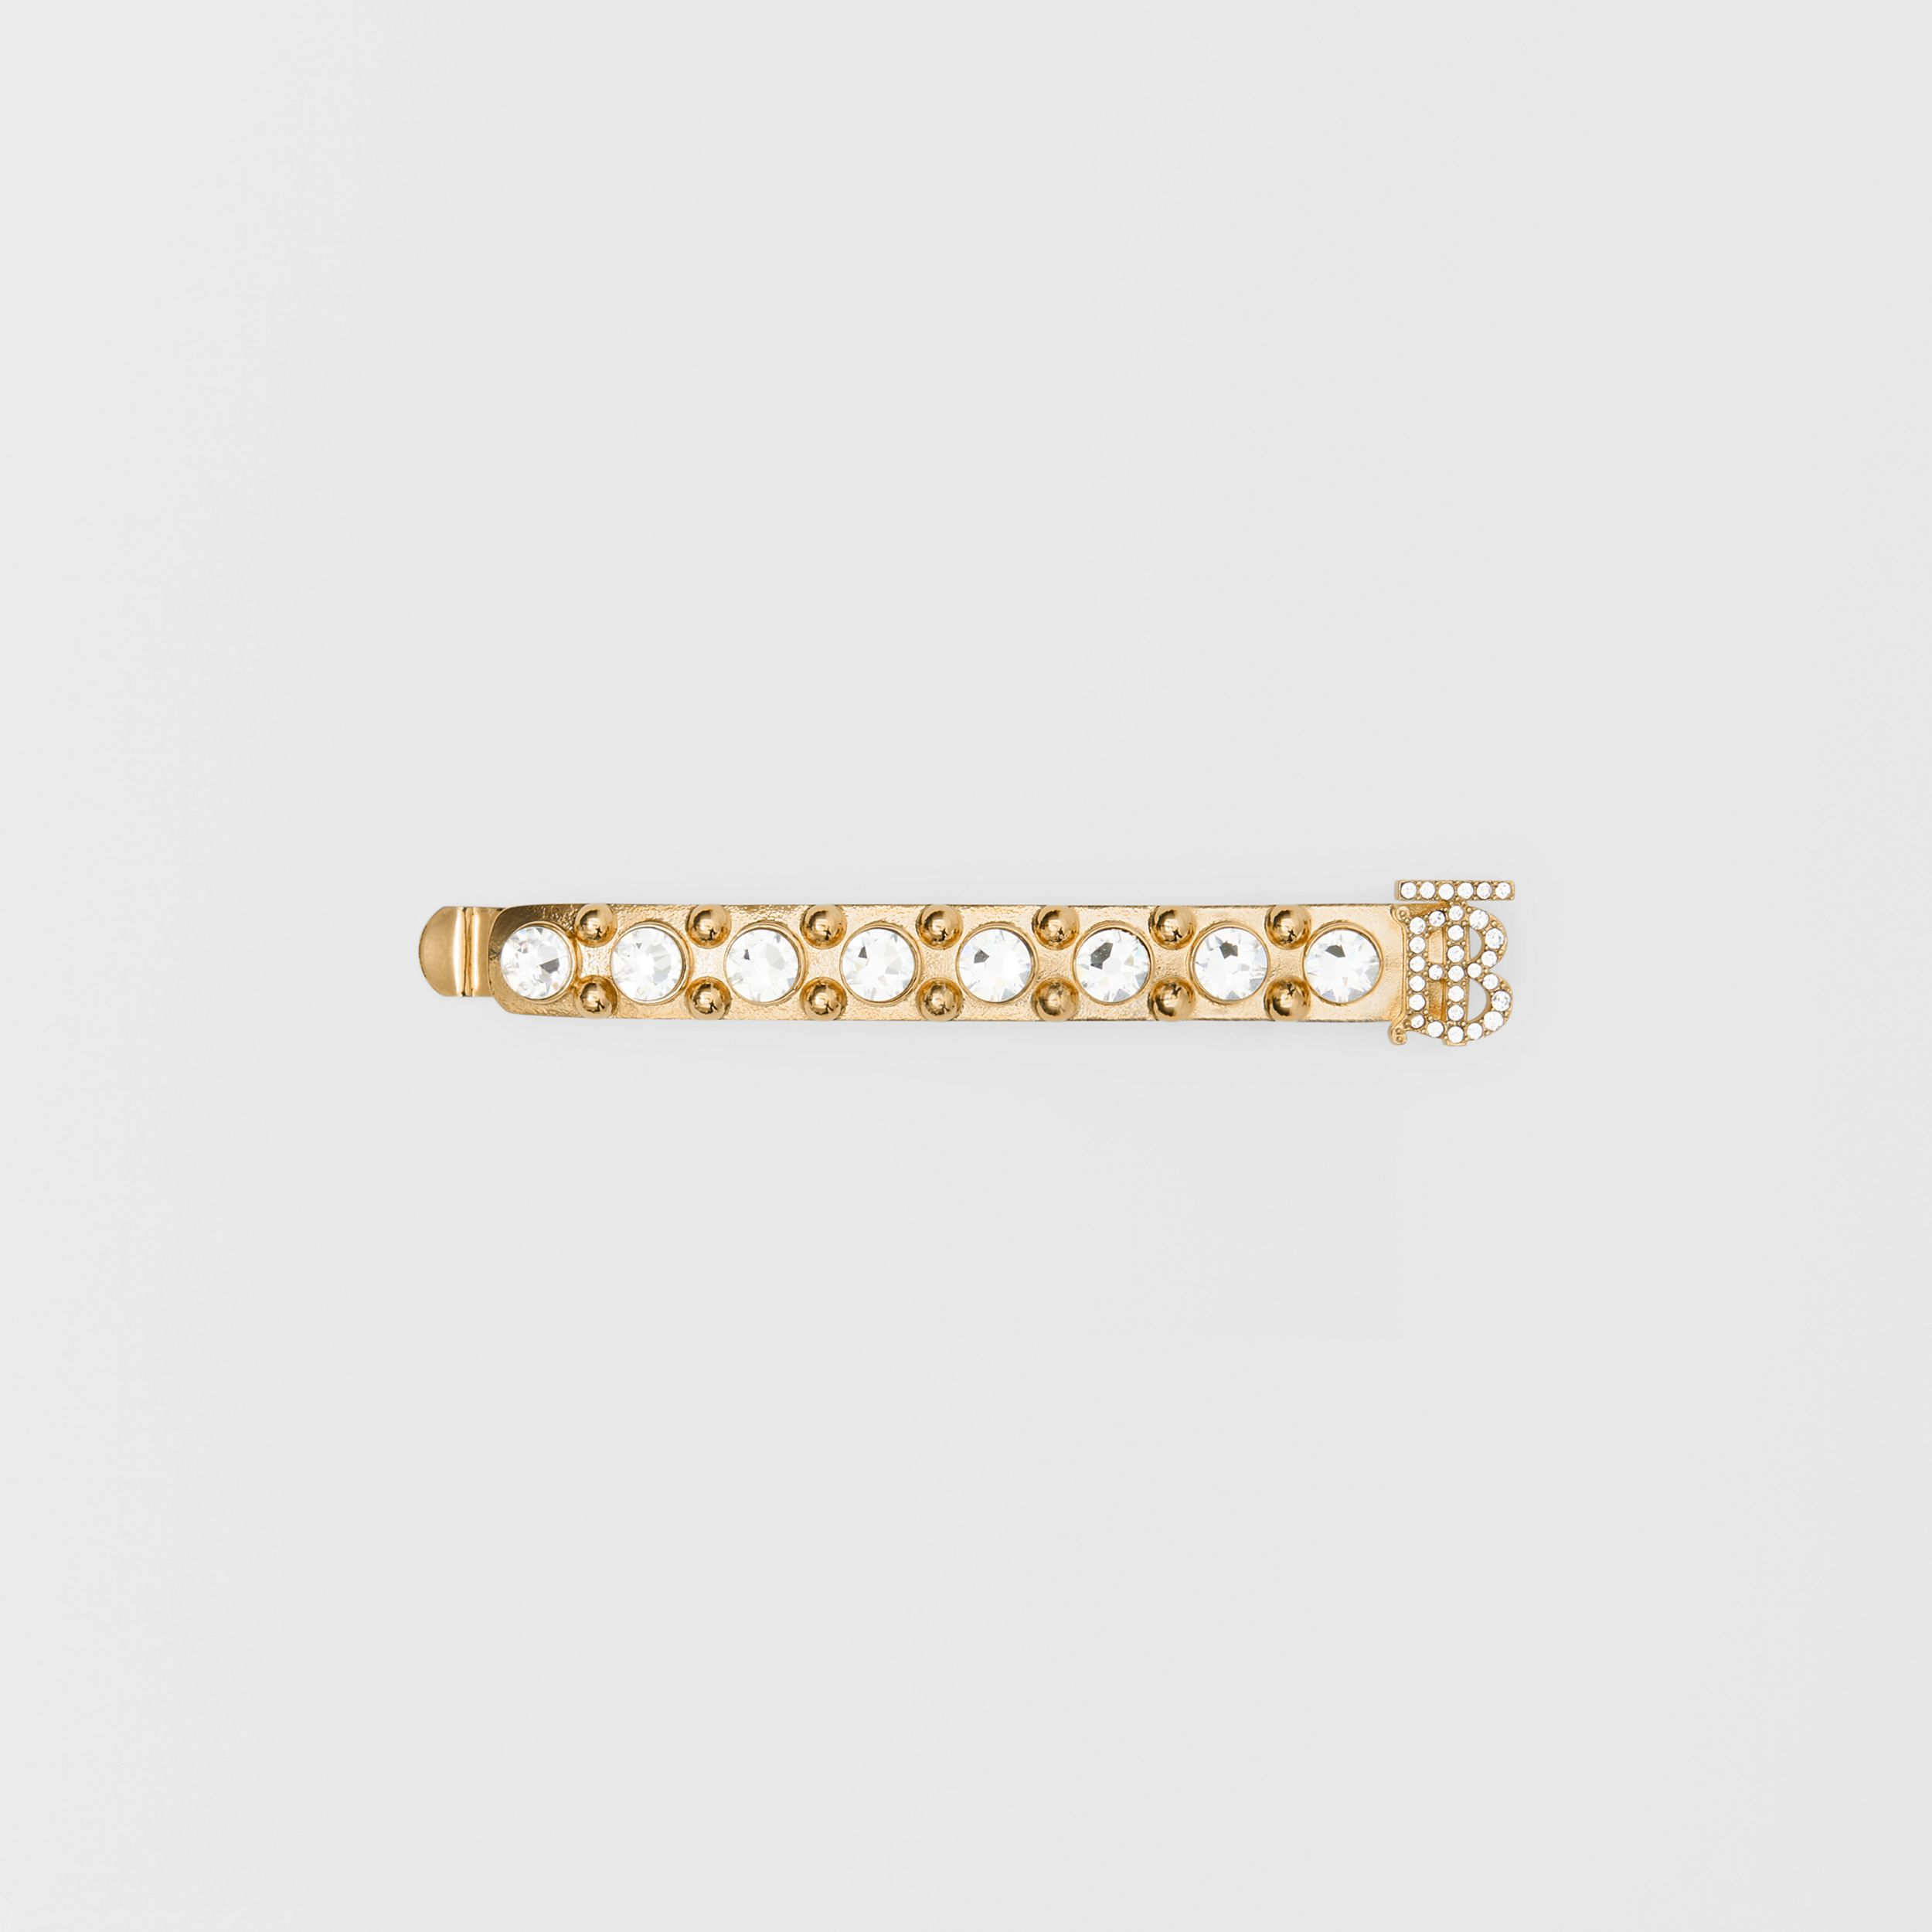 Crystal Monogram Motif Gold-plated Barrette in Light - Women | Burberry - 1